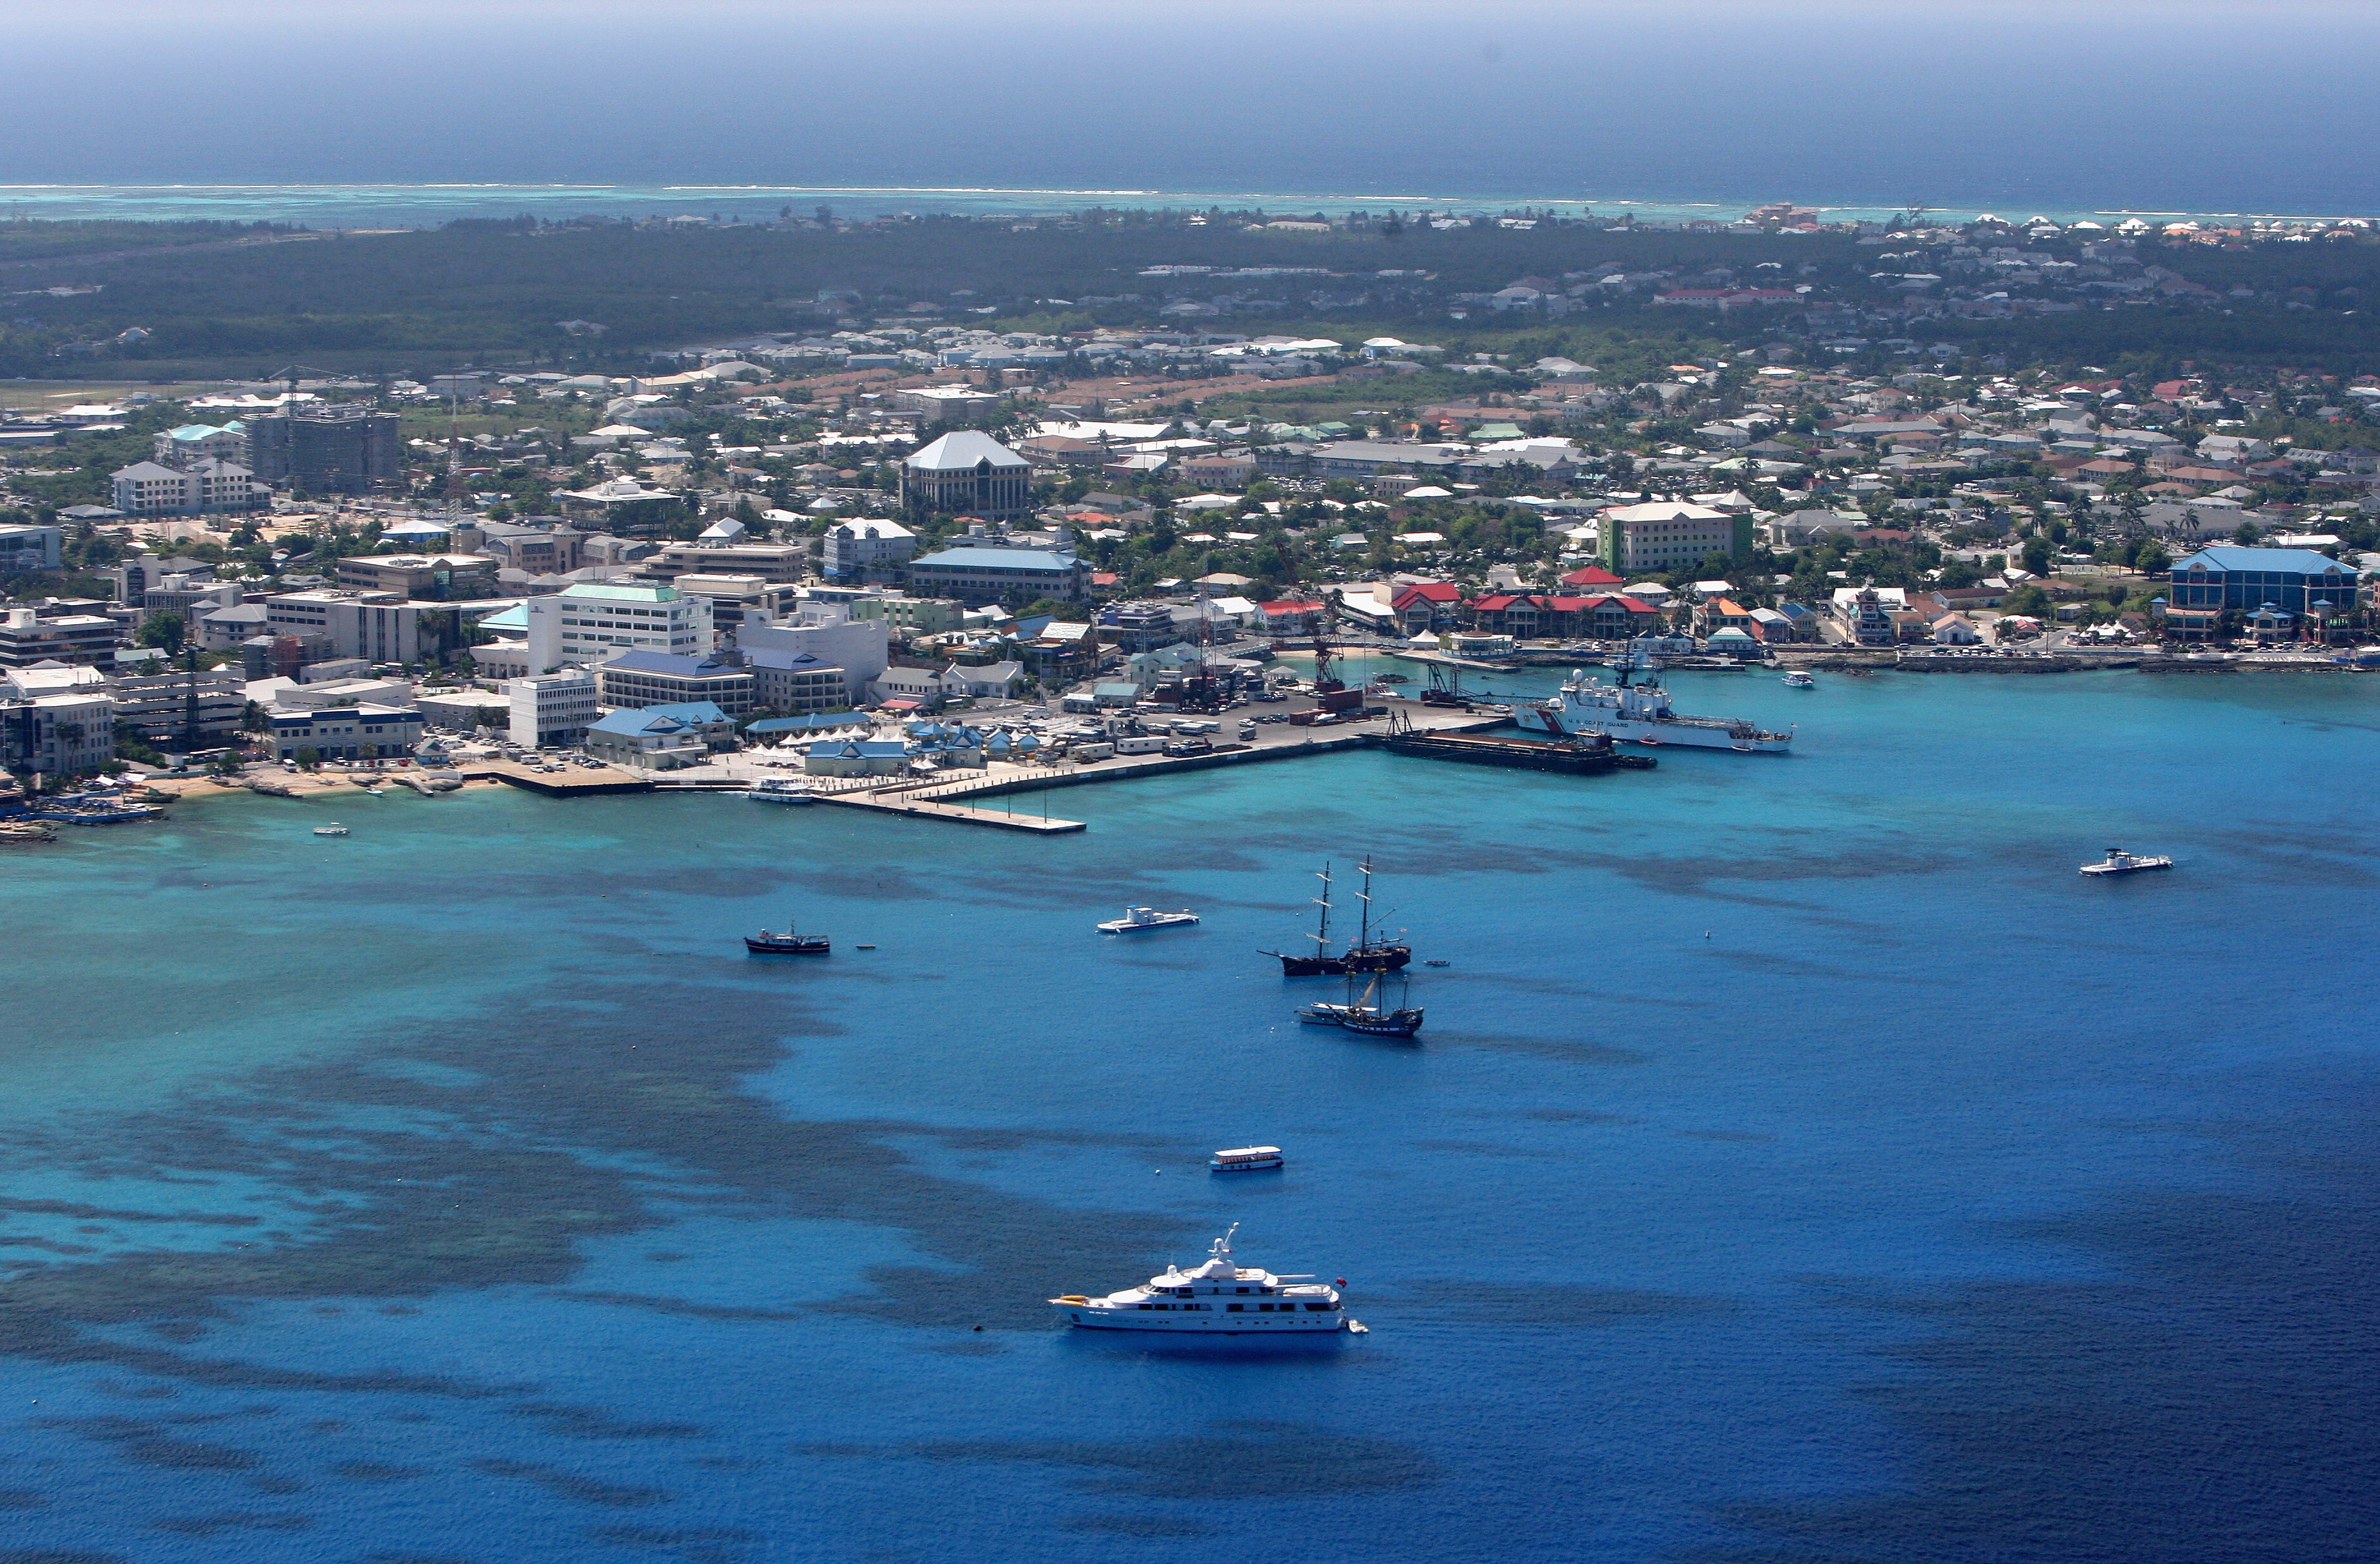 George Town pictured  on 24 April, 2008 in Grand Cayman, Cayman Islands.